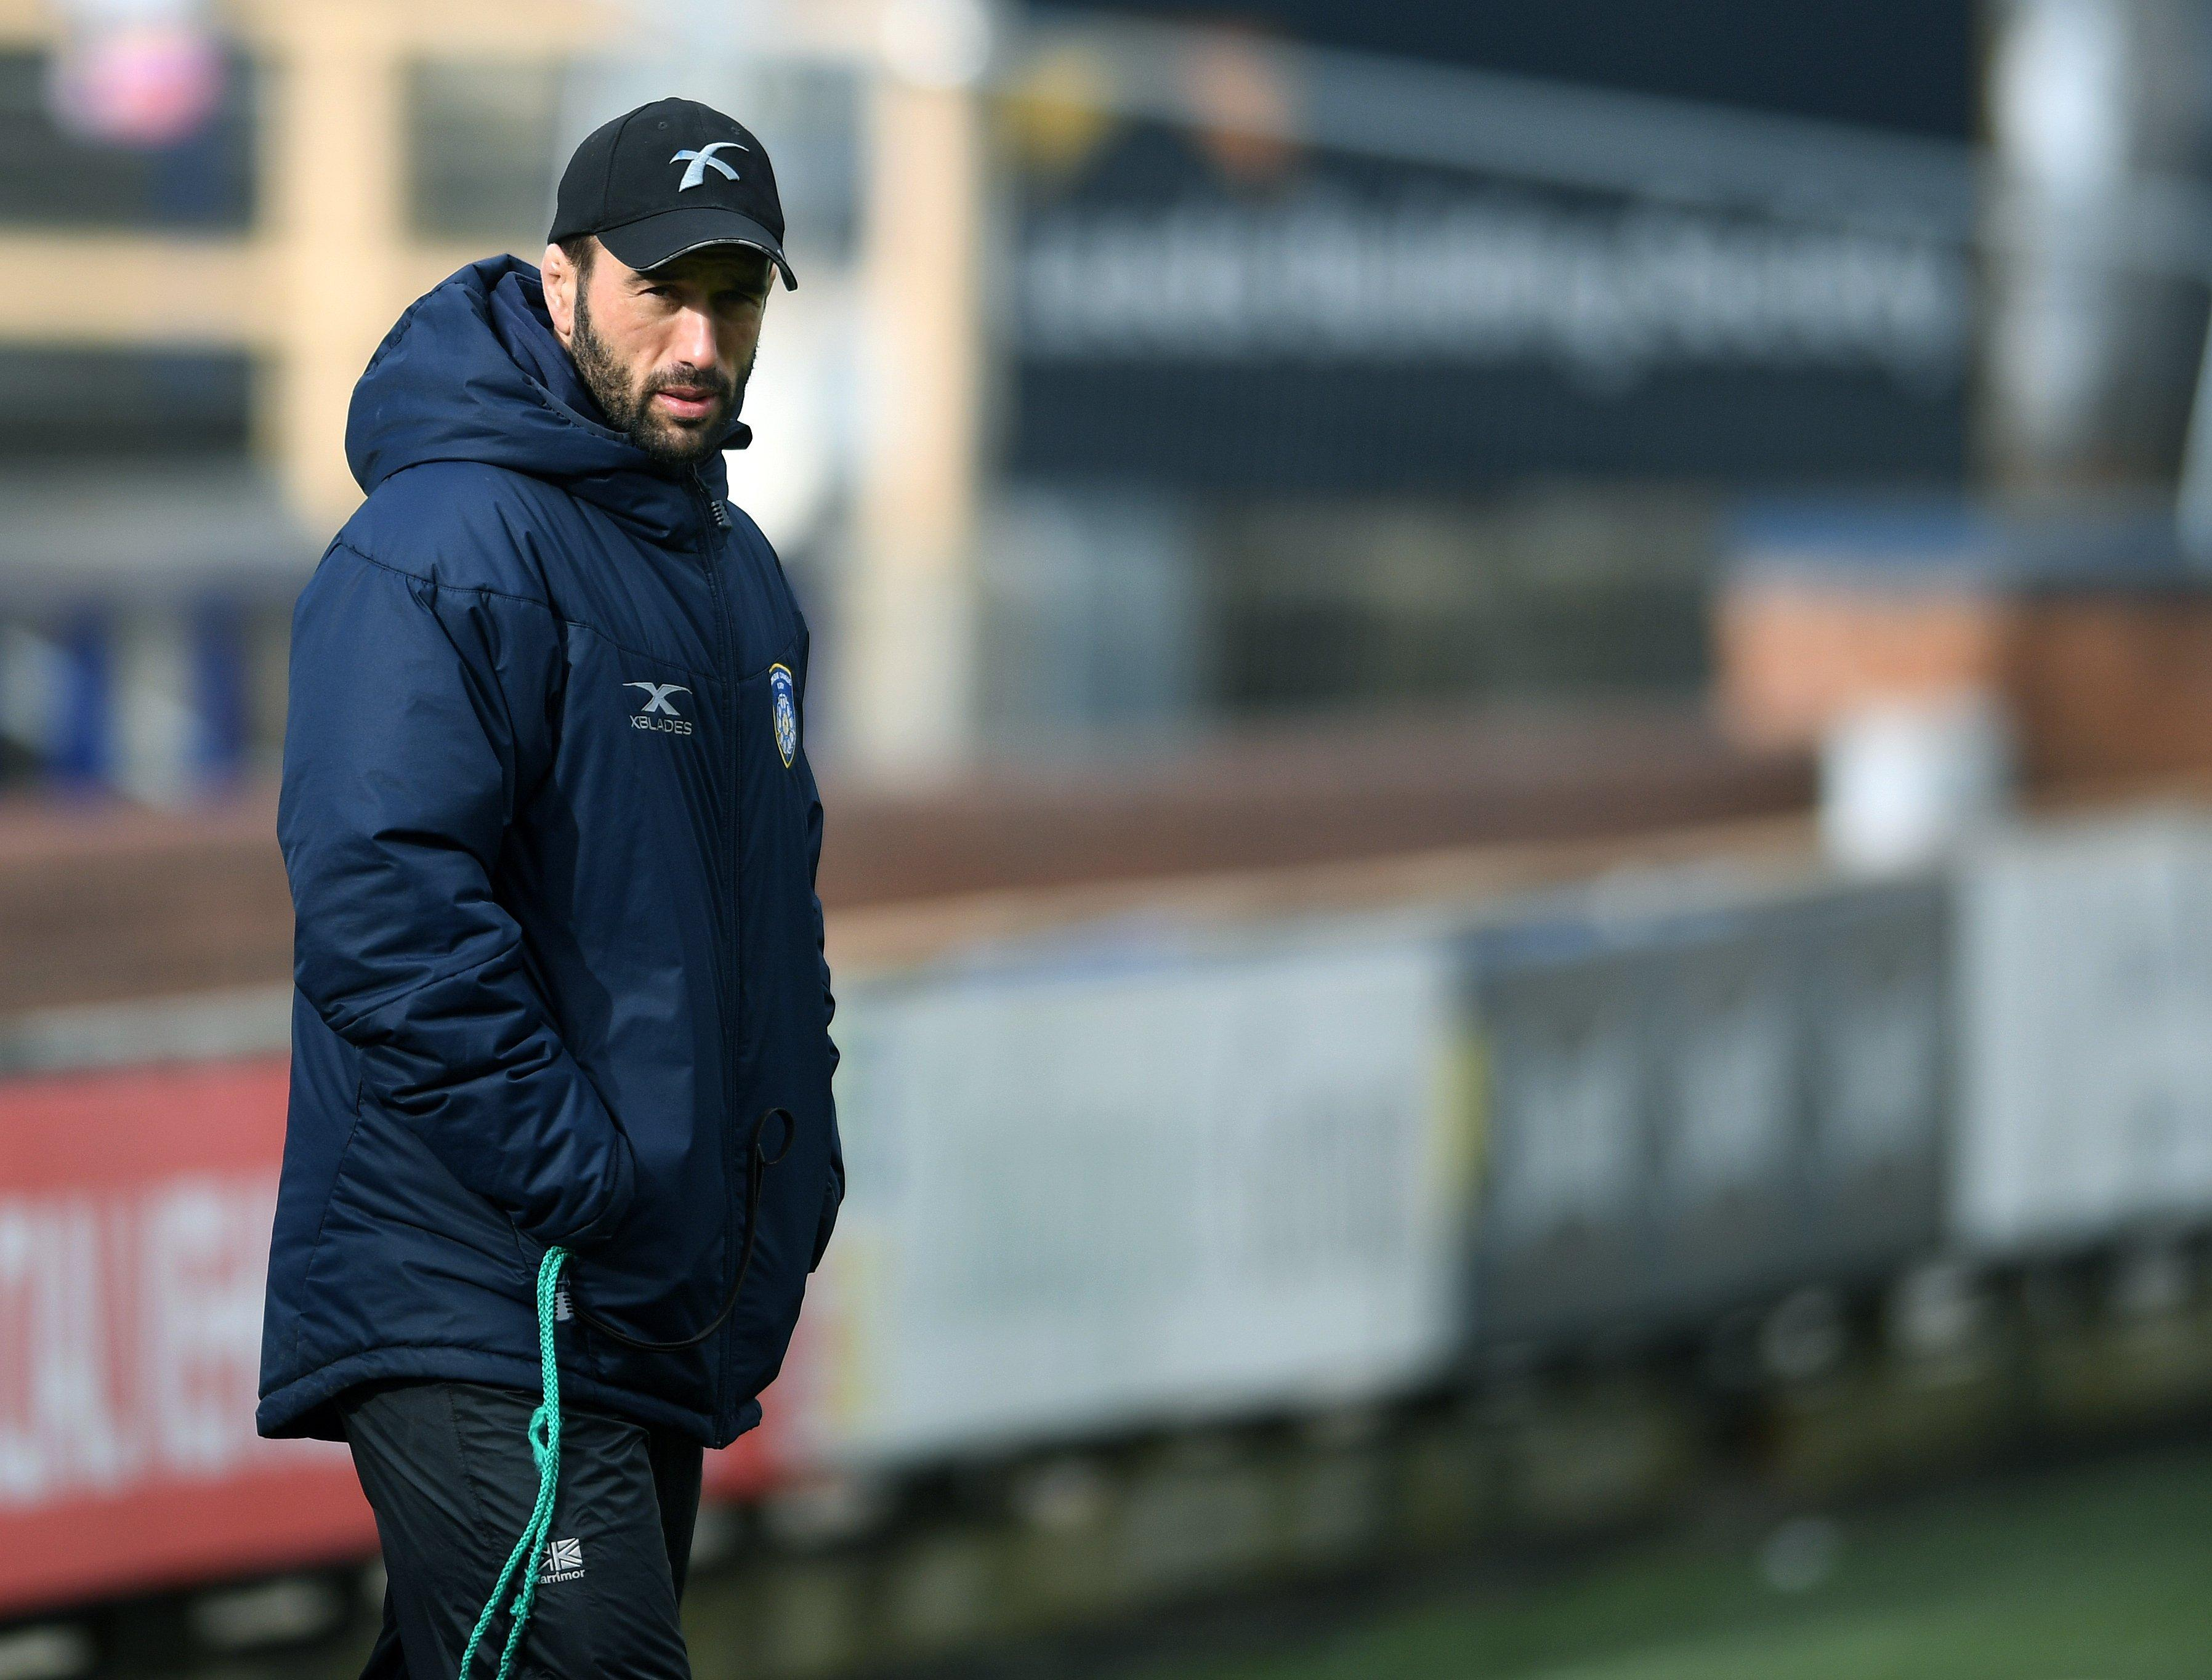 Doncaster Knights fail to upset odds as they lose to Ealing at Castle Park - Doncaster Free Press